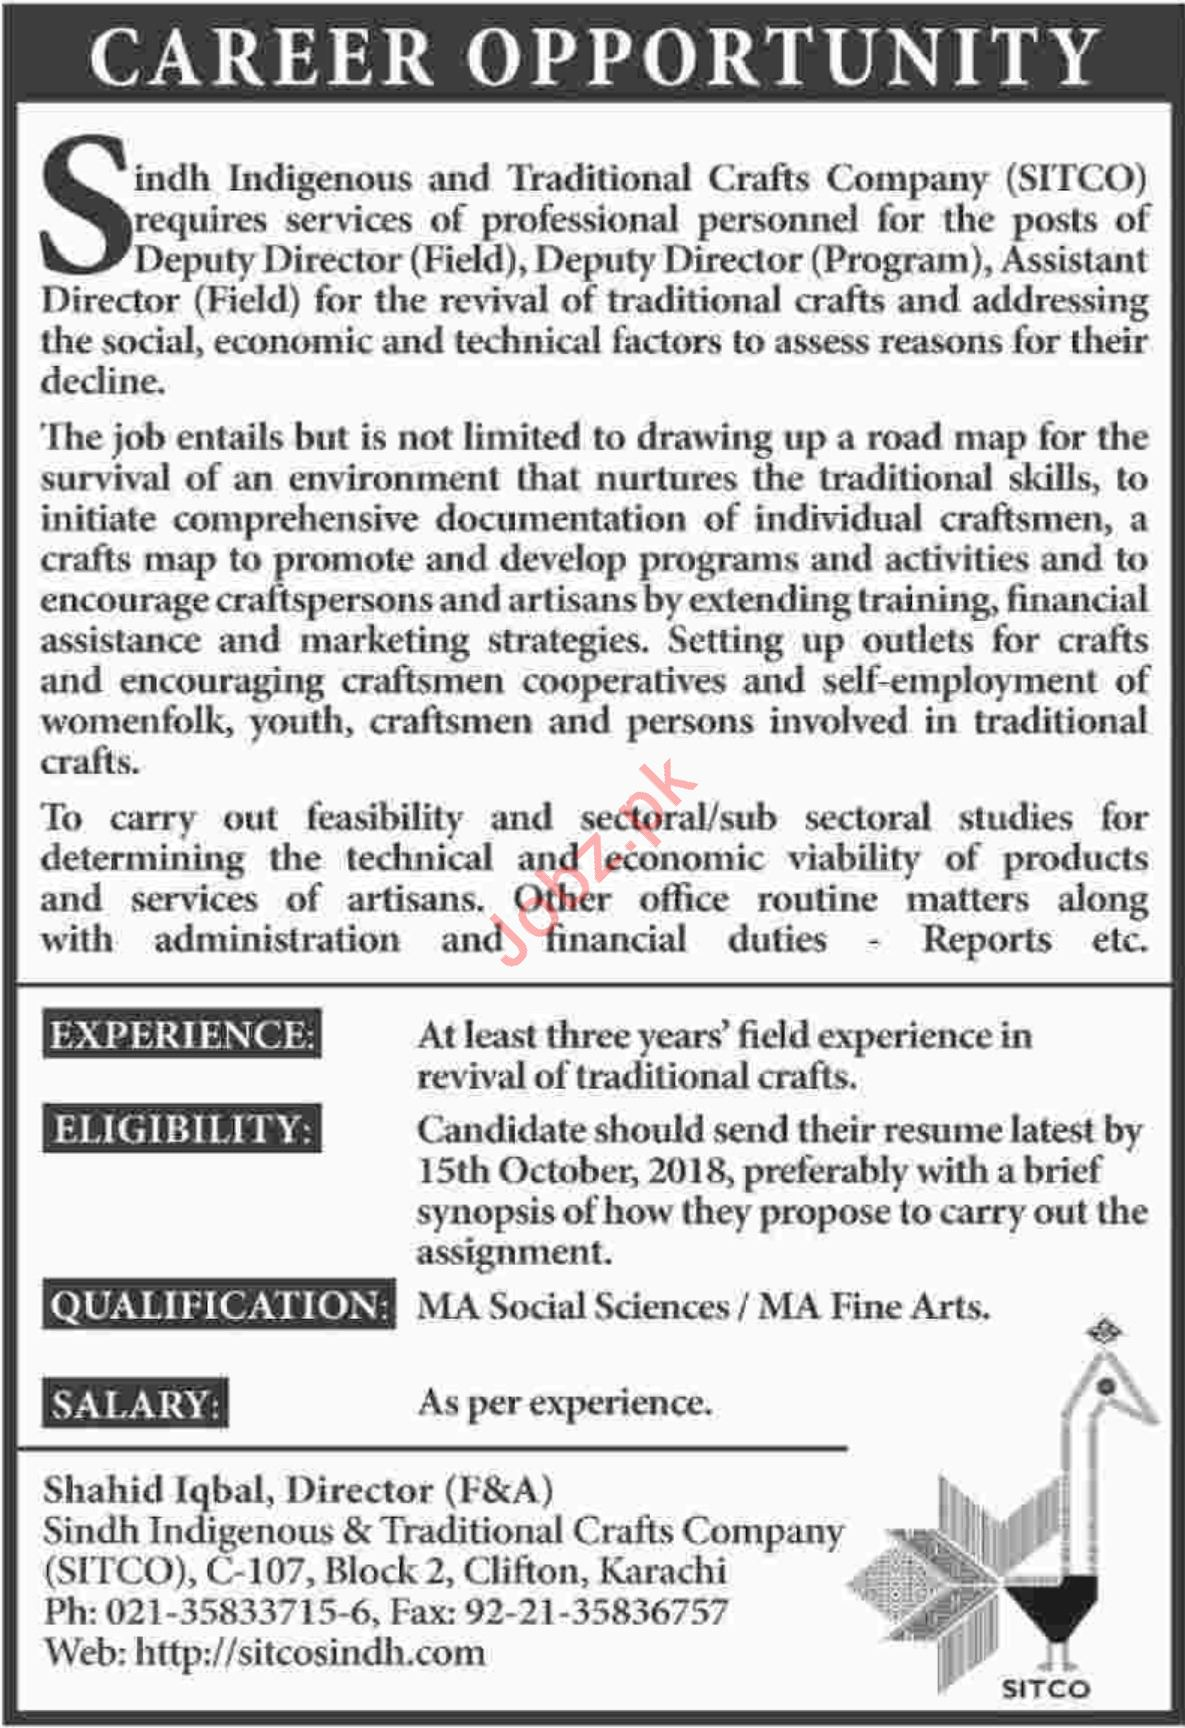 Sindh Indigenous & Traditional Crafts Company SITCO Jobs